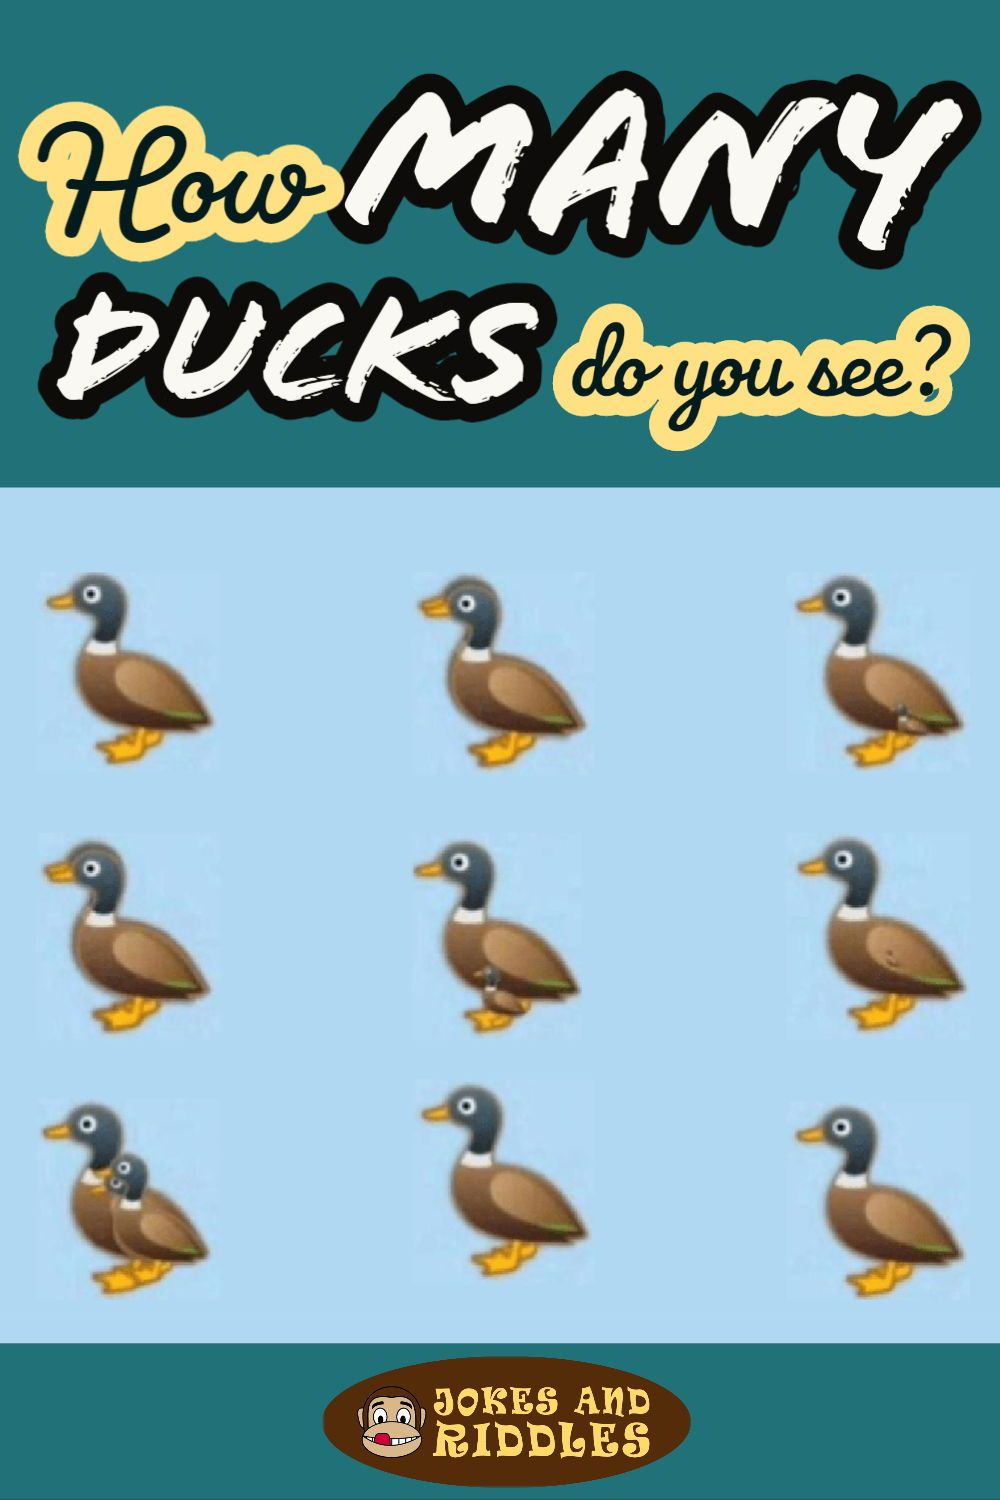 How many ducks do you see? Jokes and Riddles in 2020